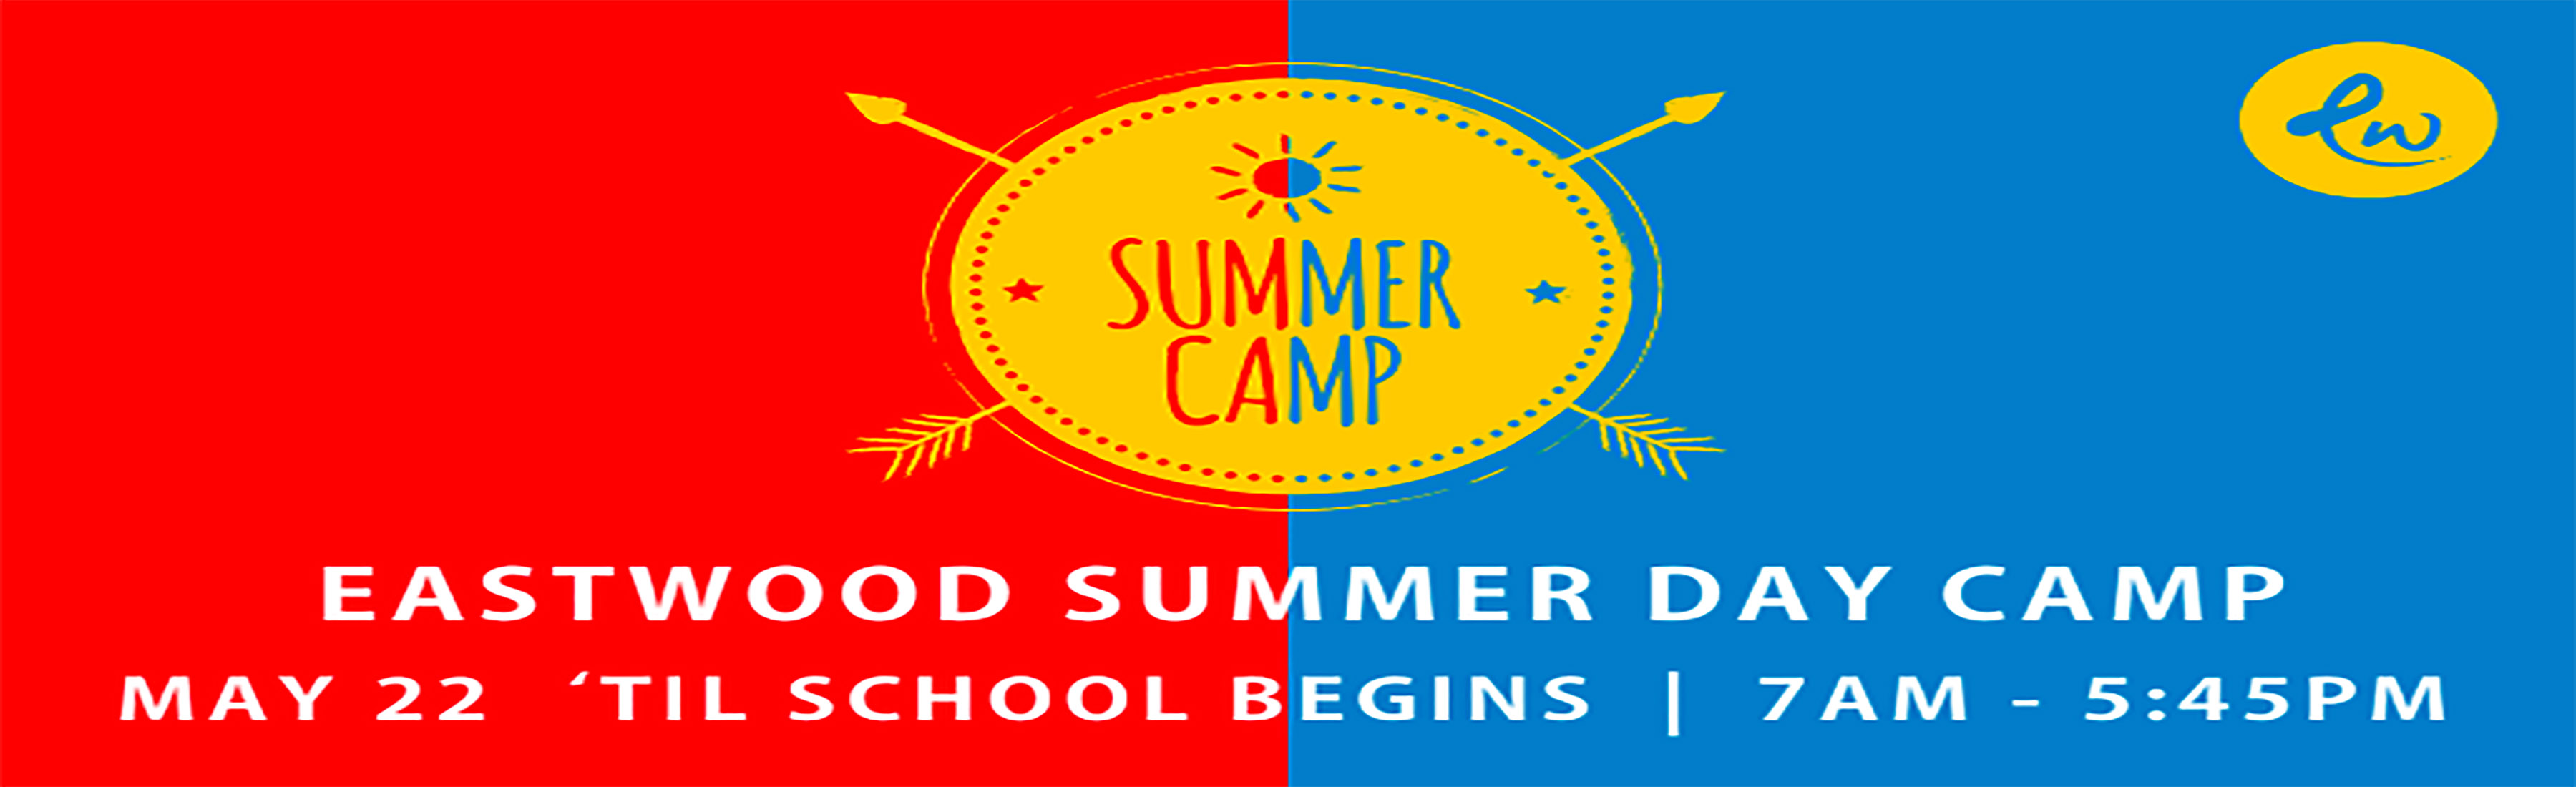 Summer Day Camp 2019 slider 3600x1100